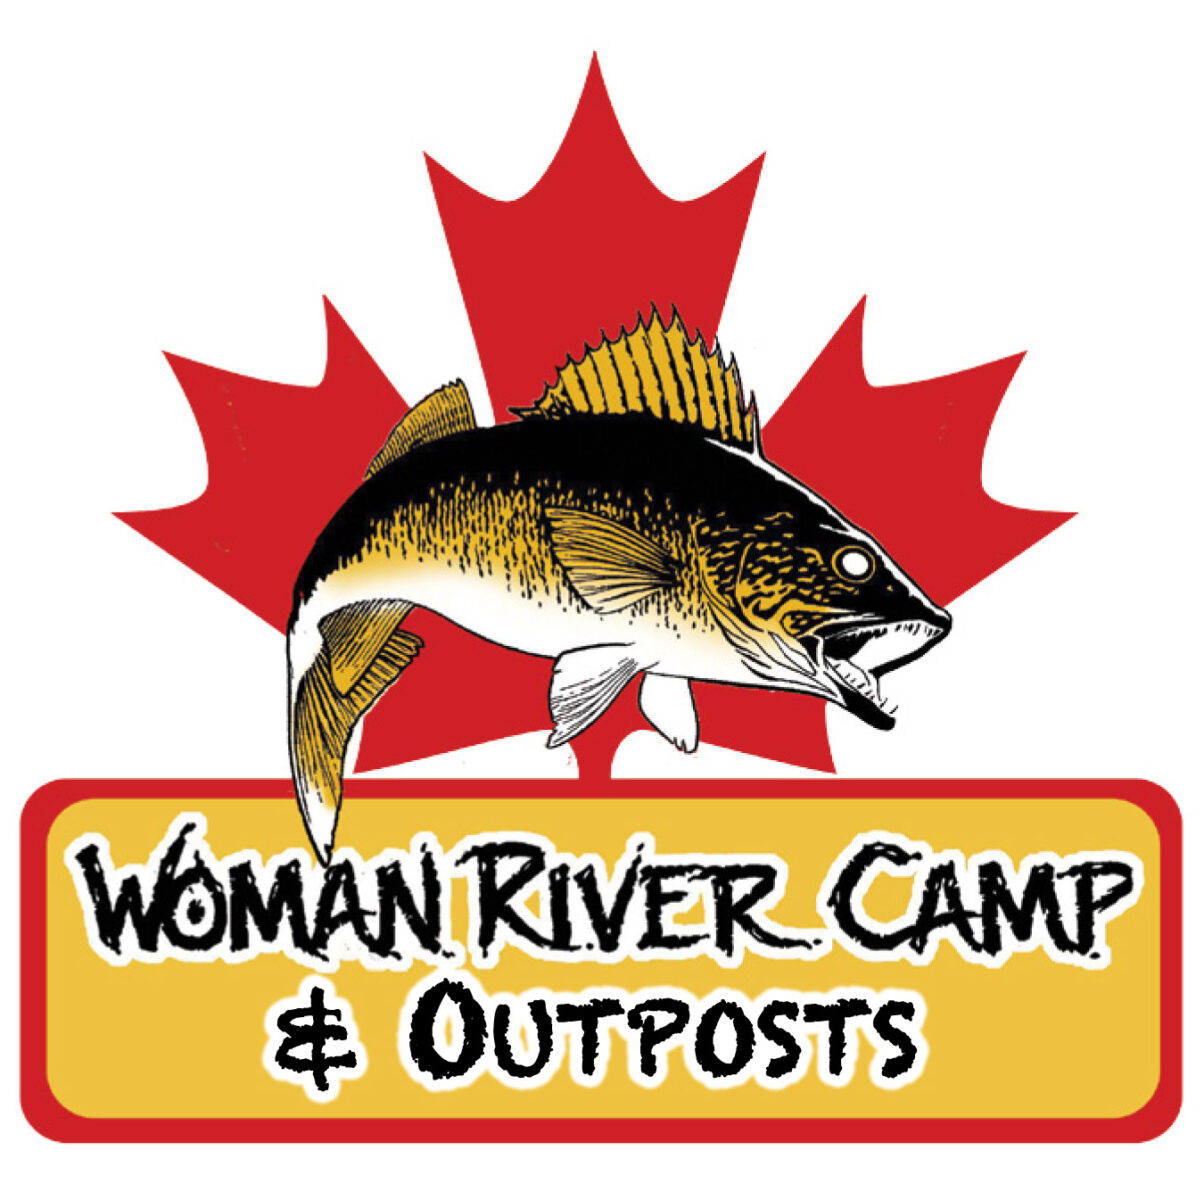 Woman River Camp and Outposts logo